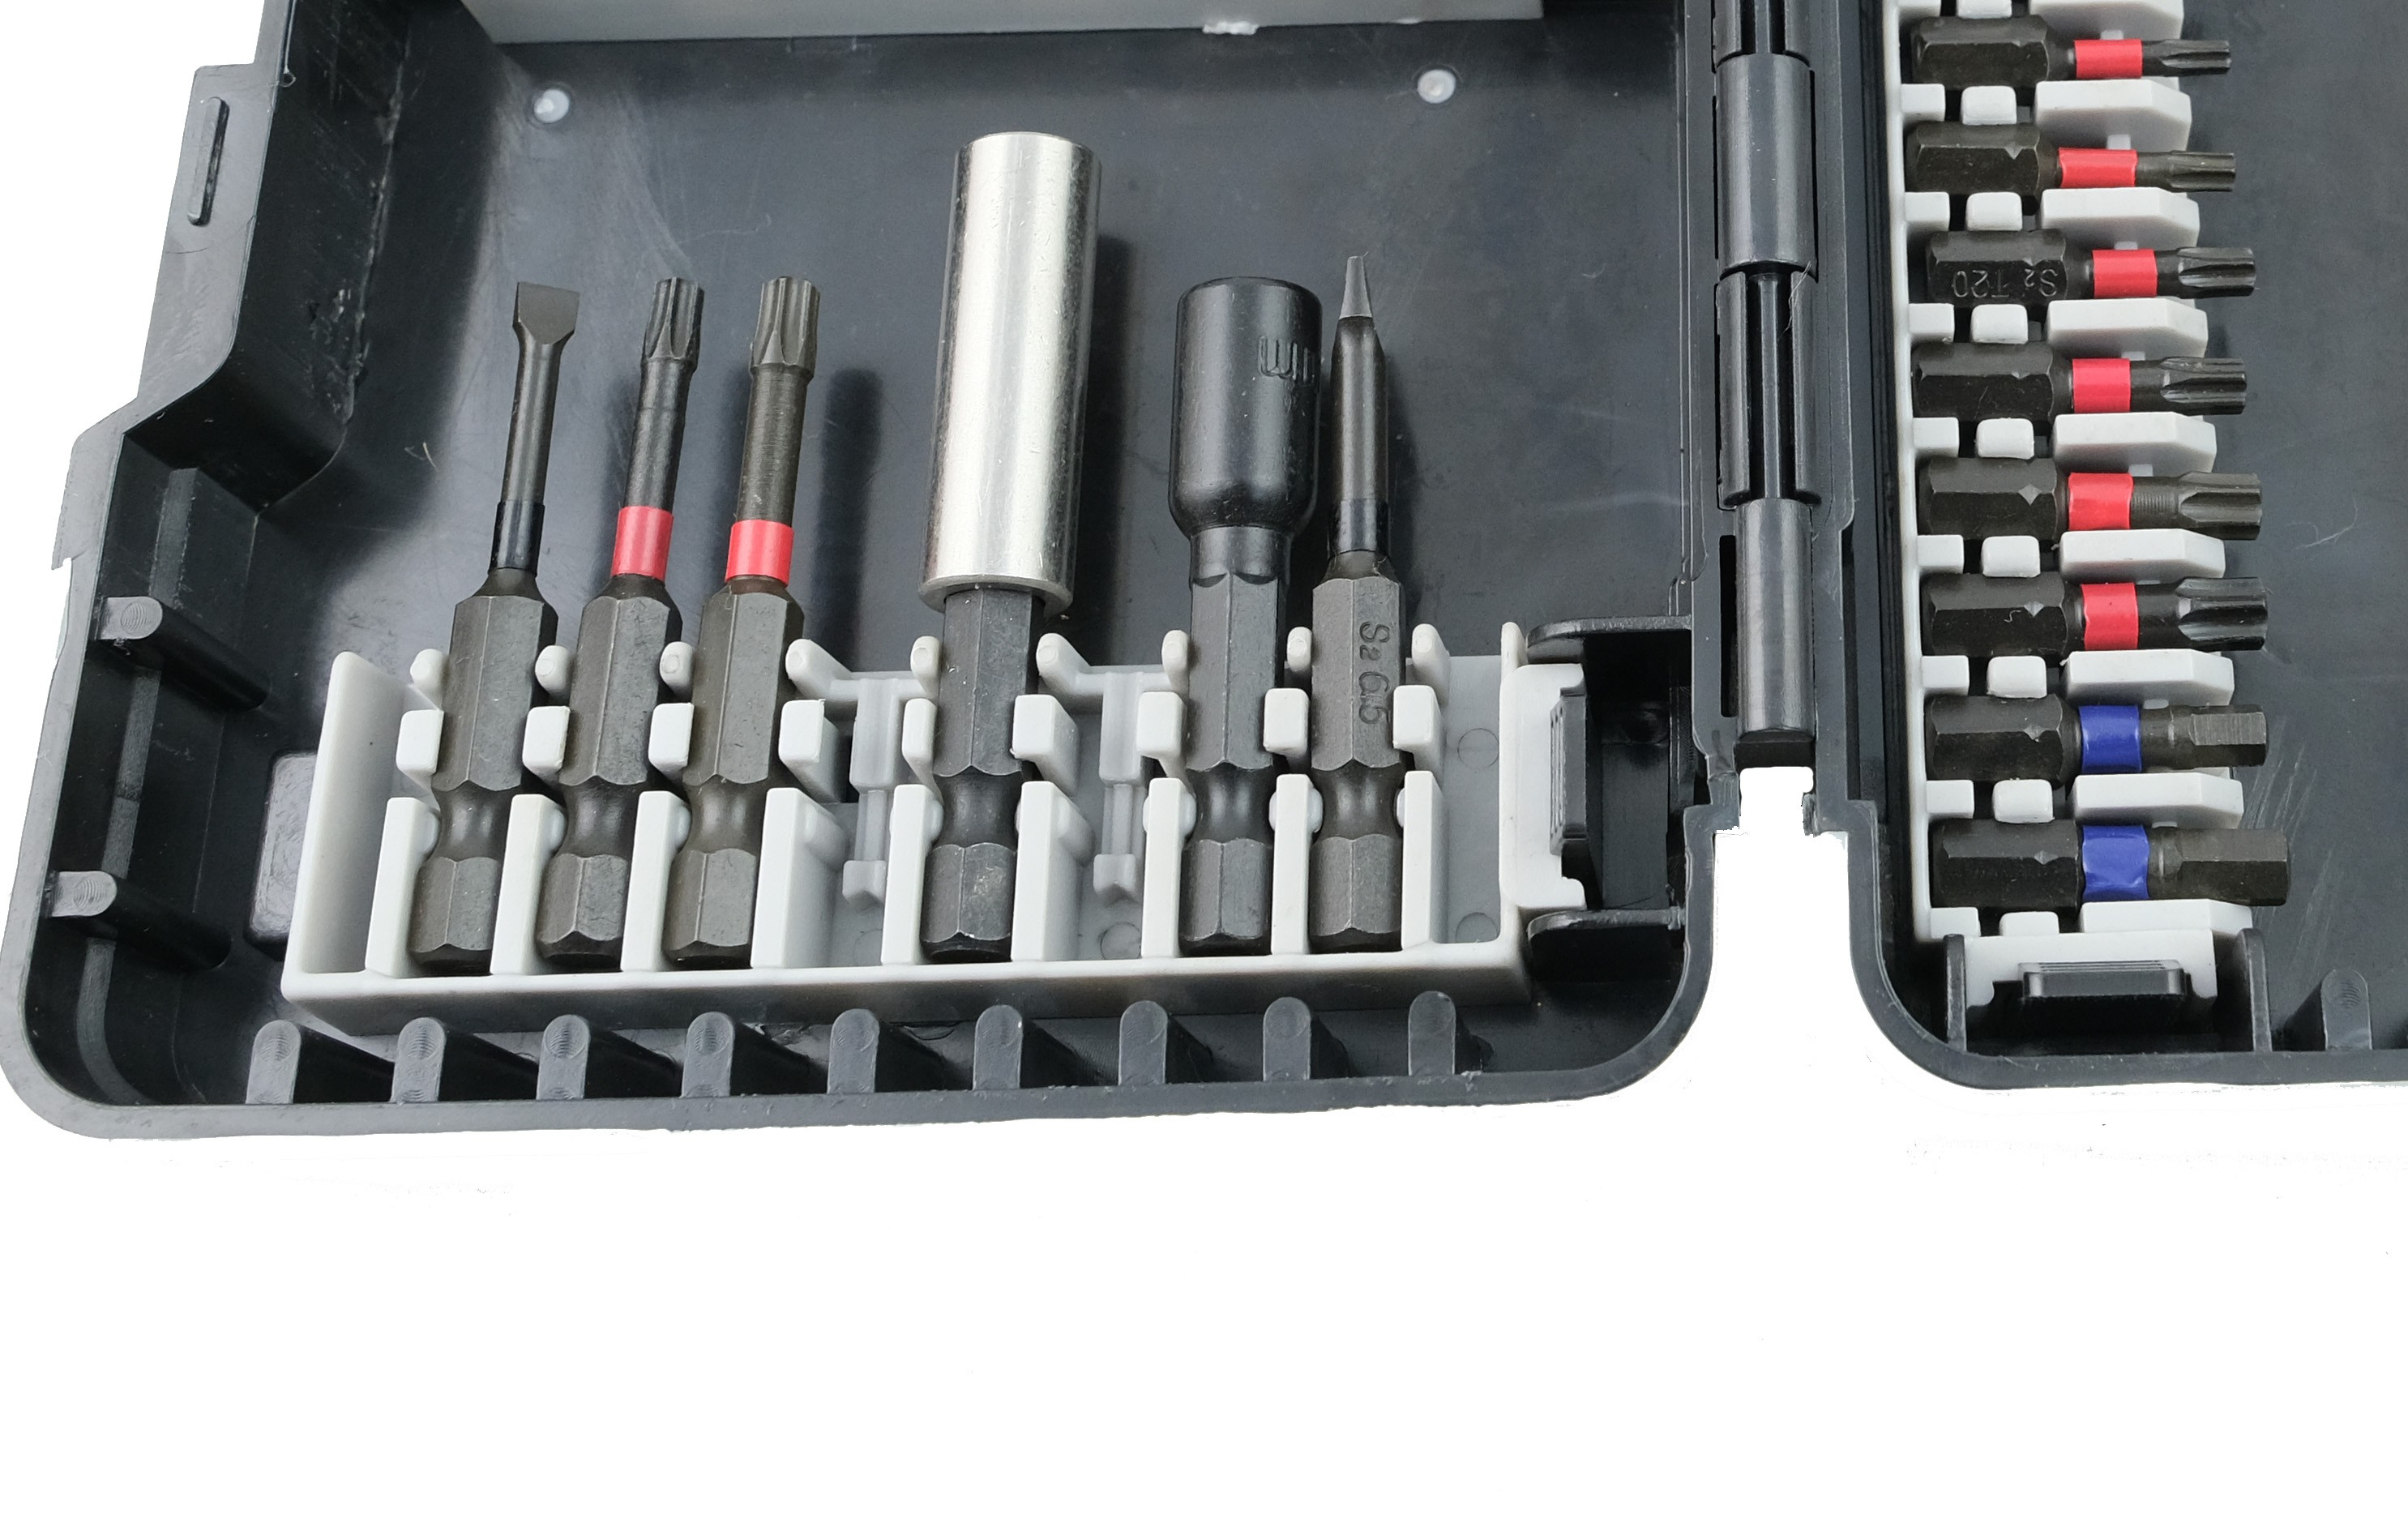 27pc SCREWDRIVER BIT Impact Bit Set